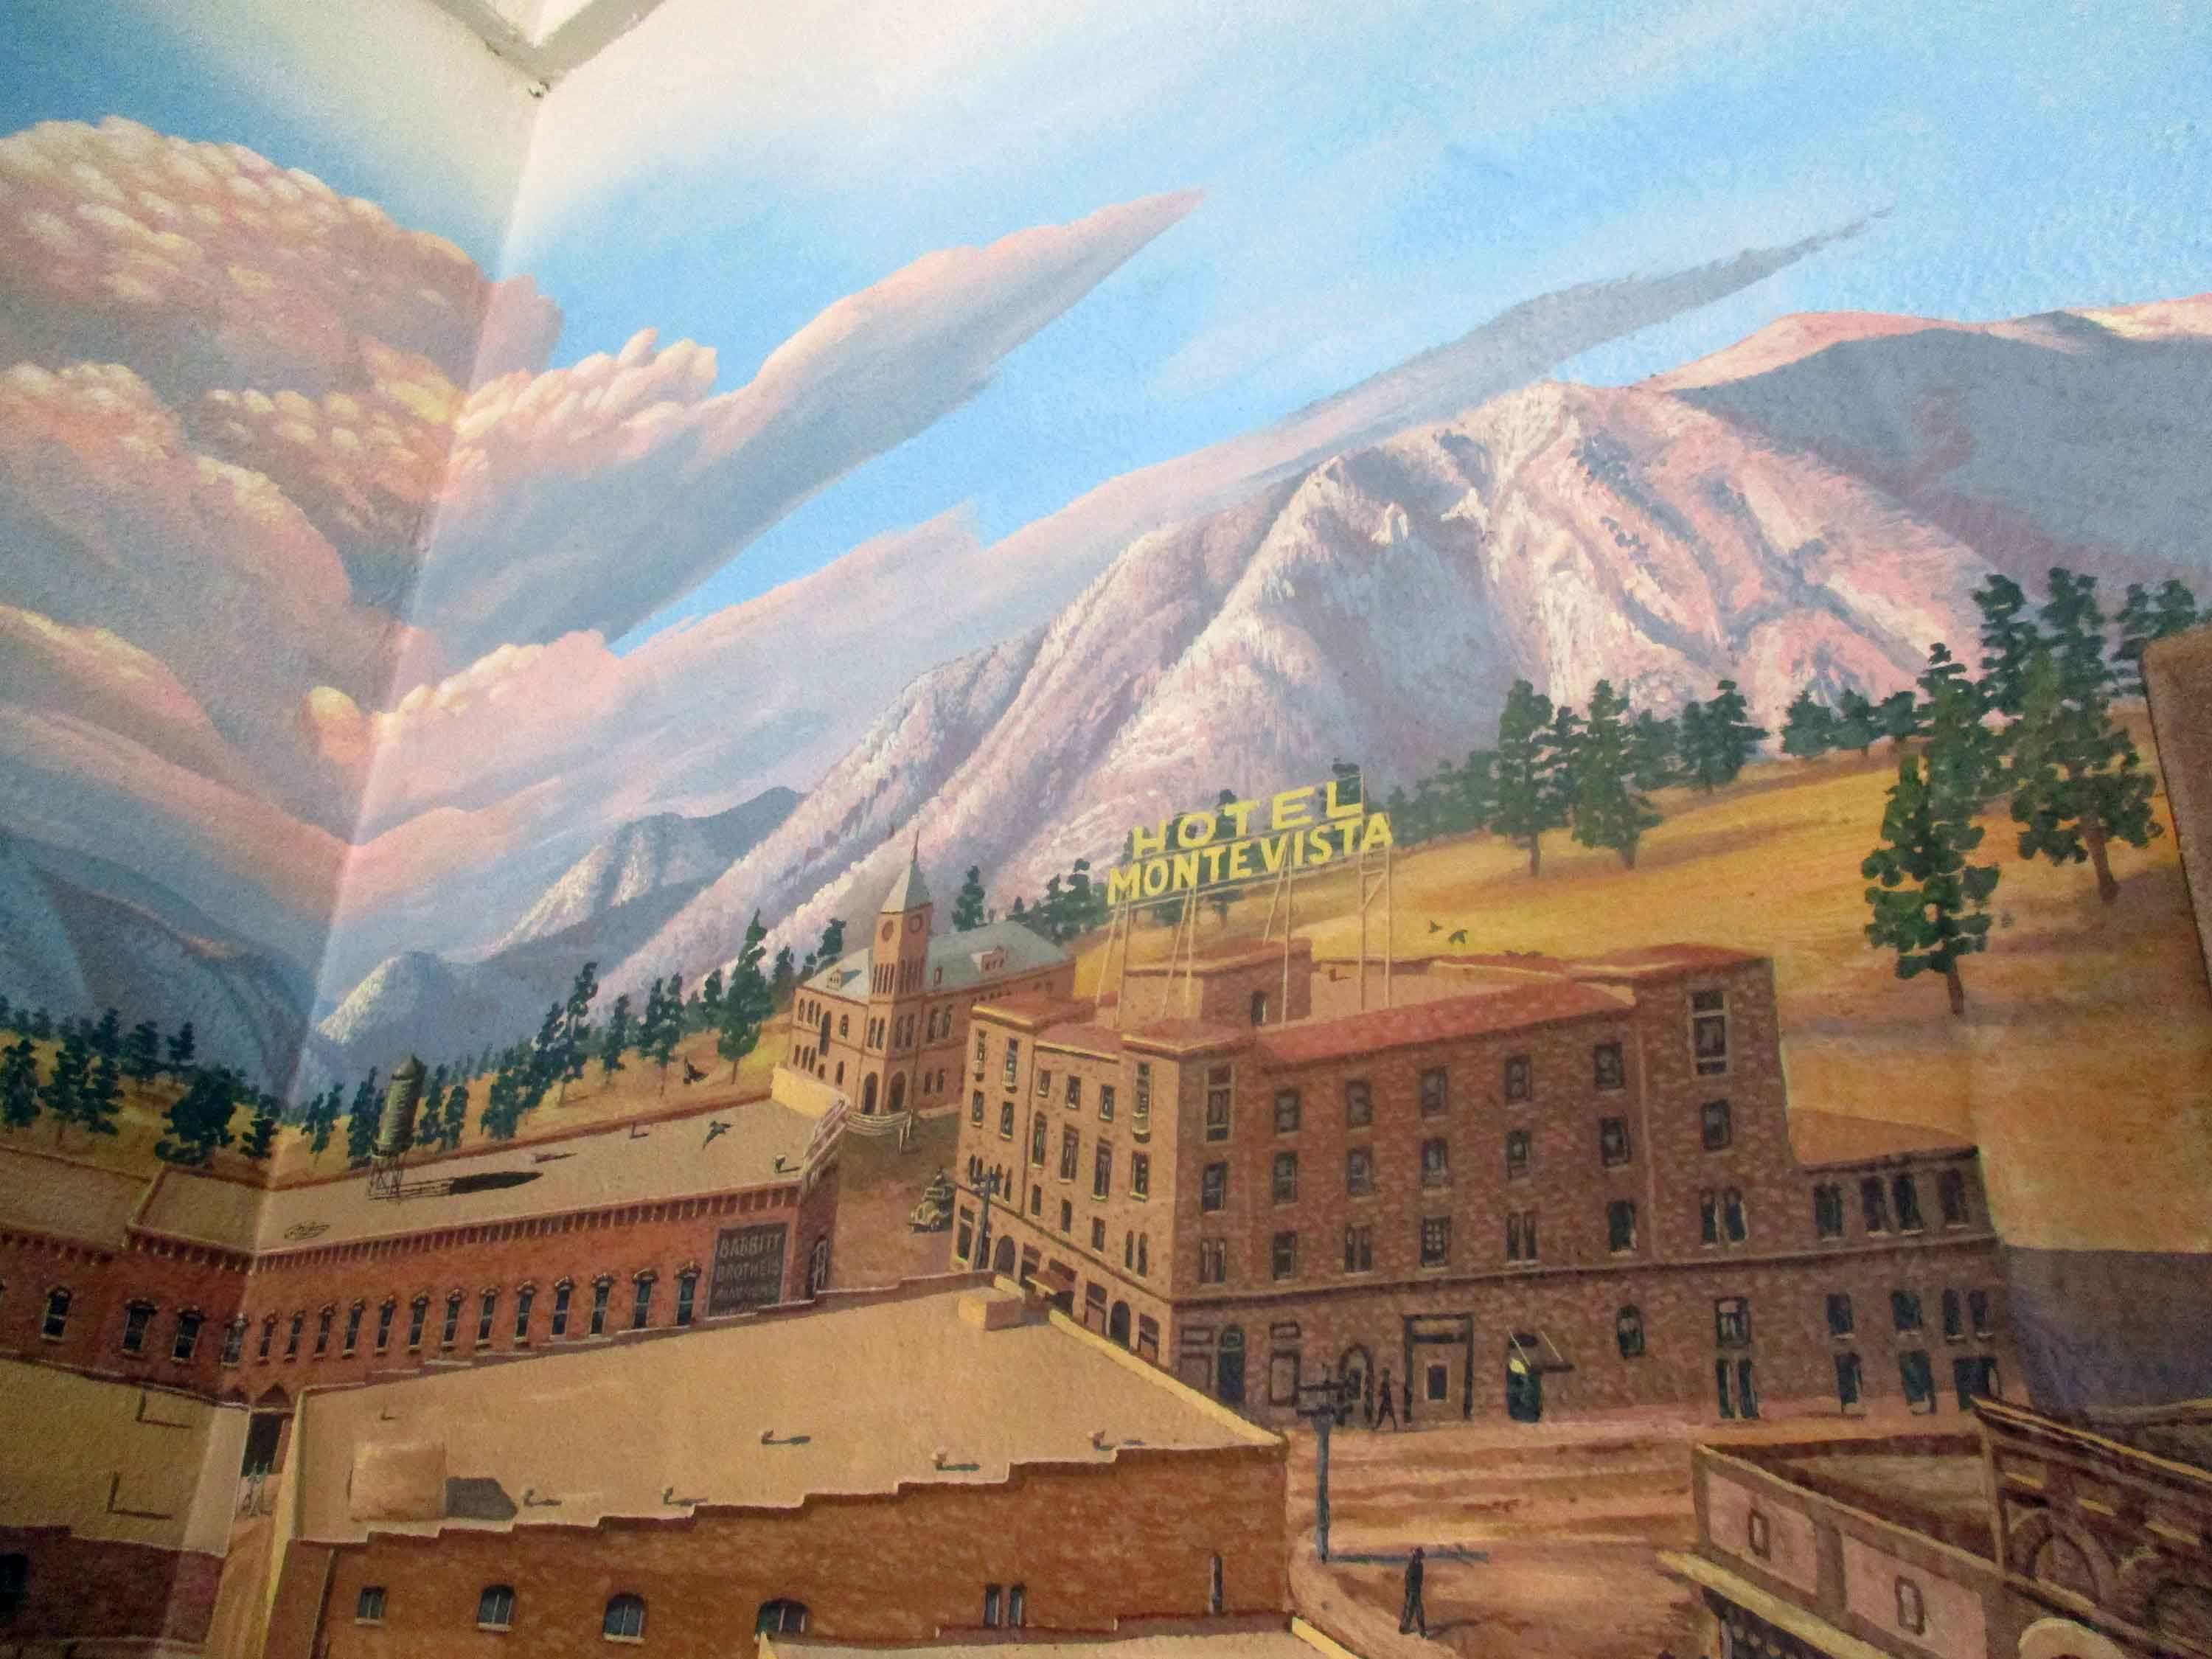 Flagstaff Visitor Center Mural 68